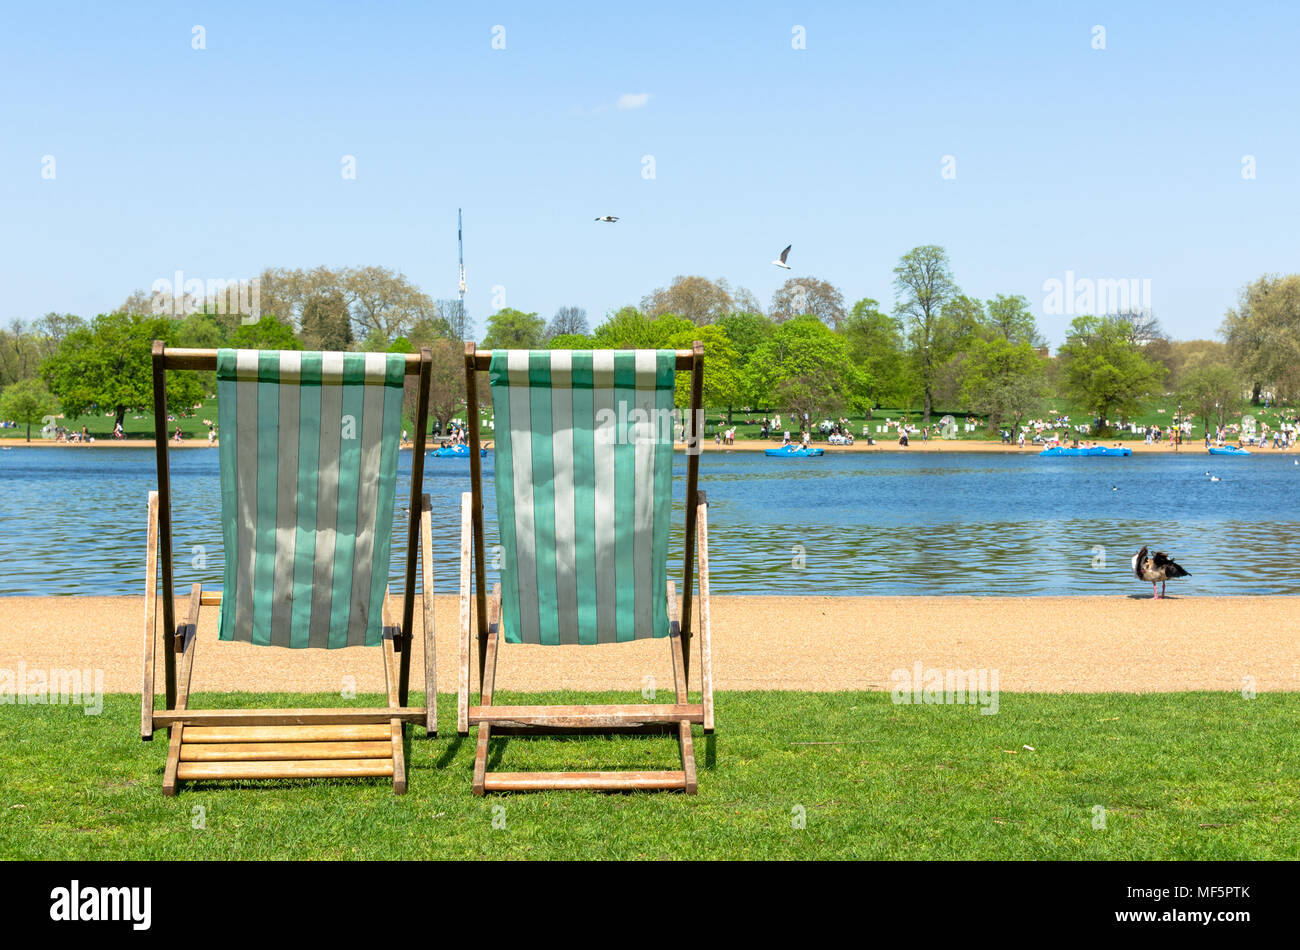 Sun deck chairs by the Serpentine River at Hyde Park, London - Stock Image